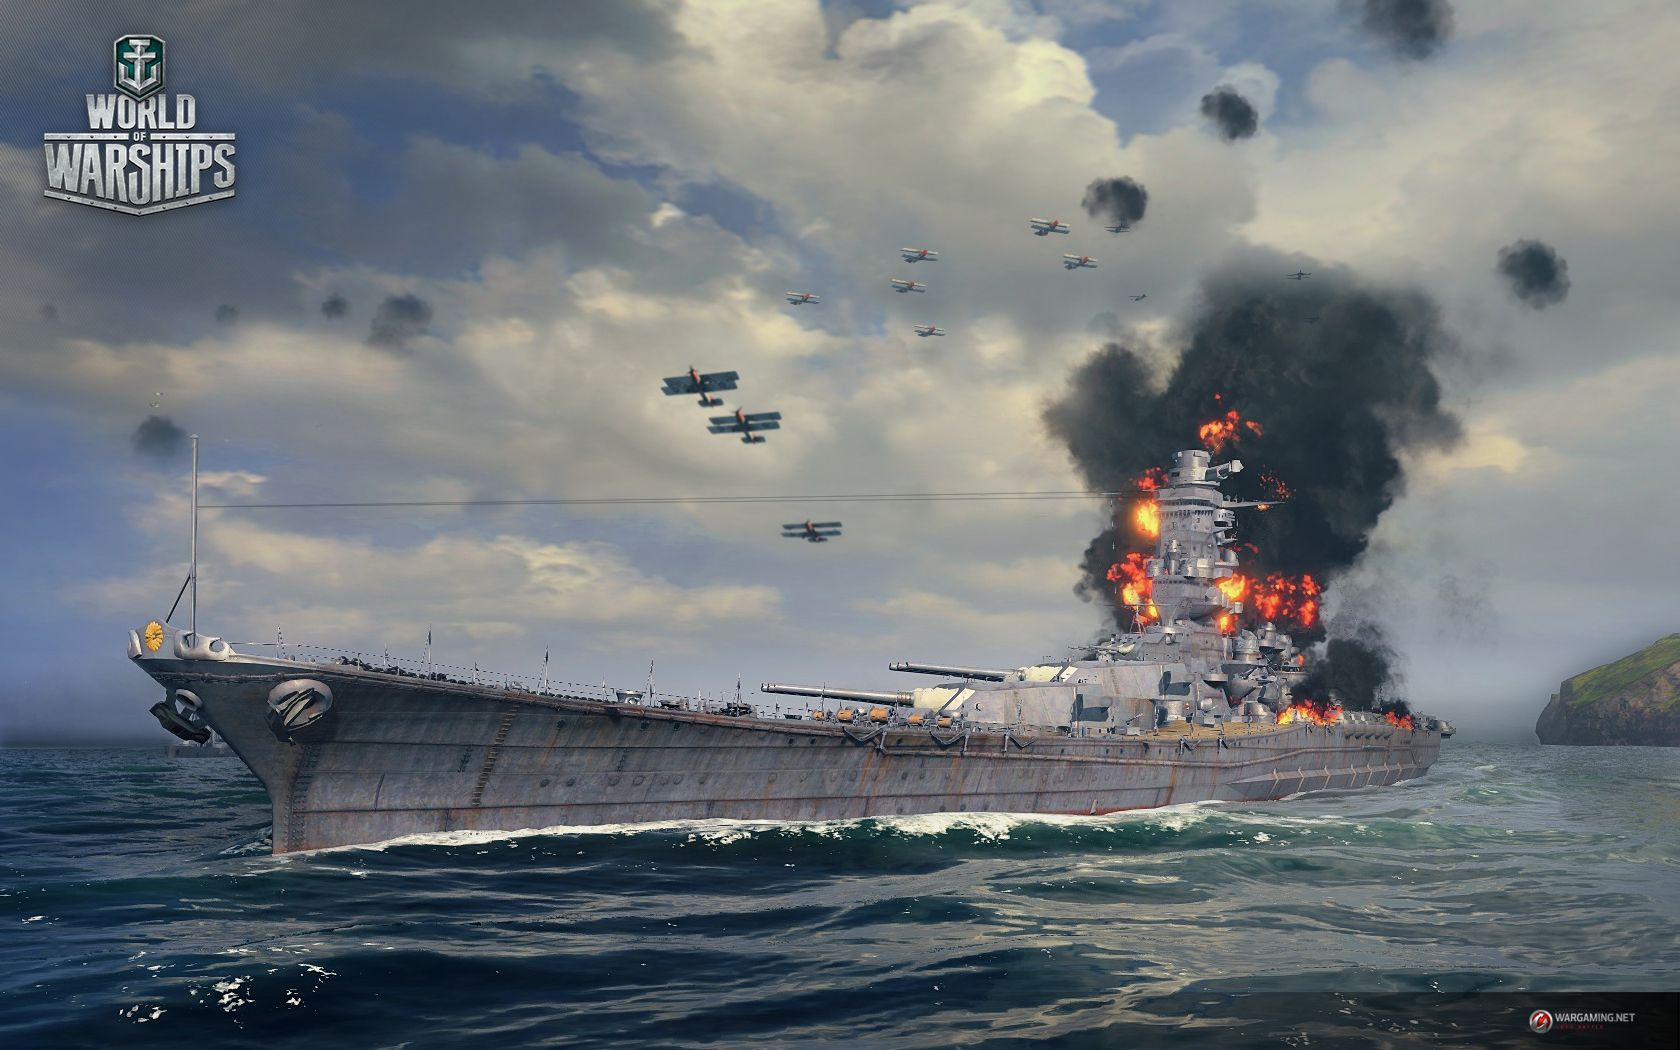 World Of Warships Game Download Online Multiplayer Naval Game About Battleships World Of Warships World Of Warships Wallpaper Warship Games Warship